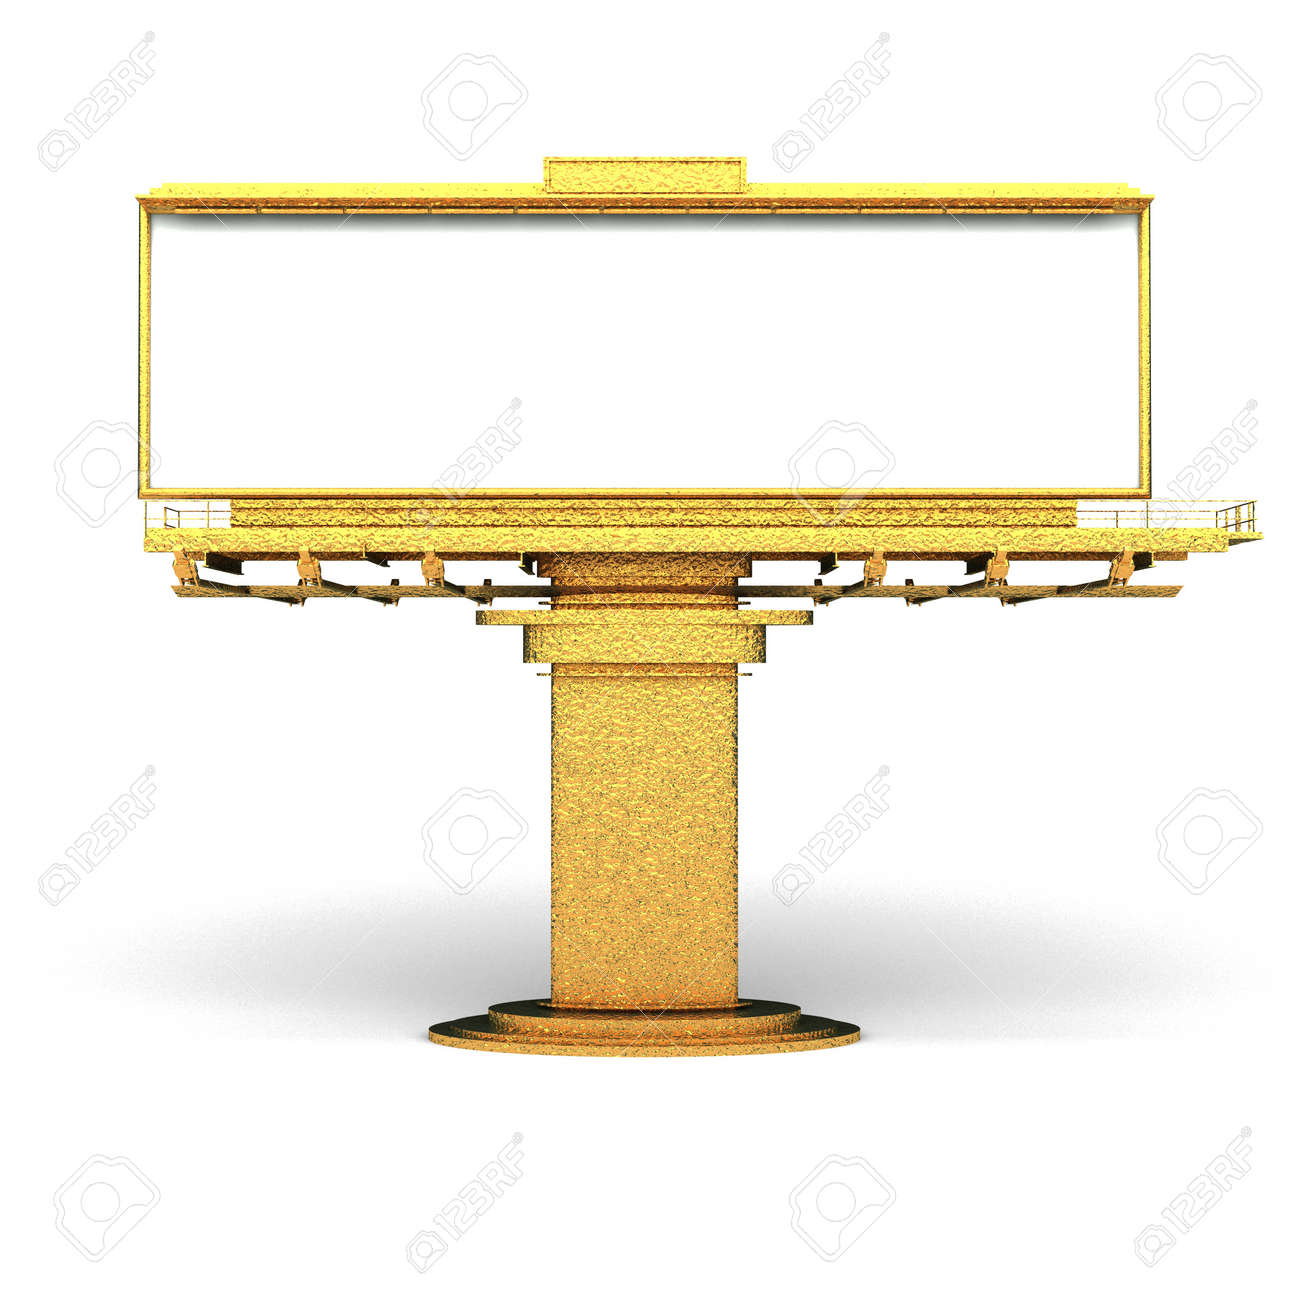 isolated golden Billboard made in 3d graphics Stock Photo - 8159452